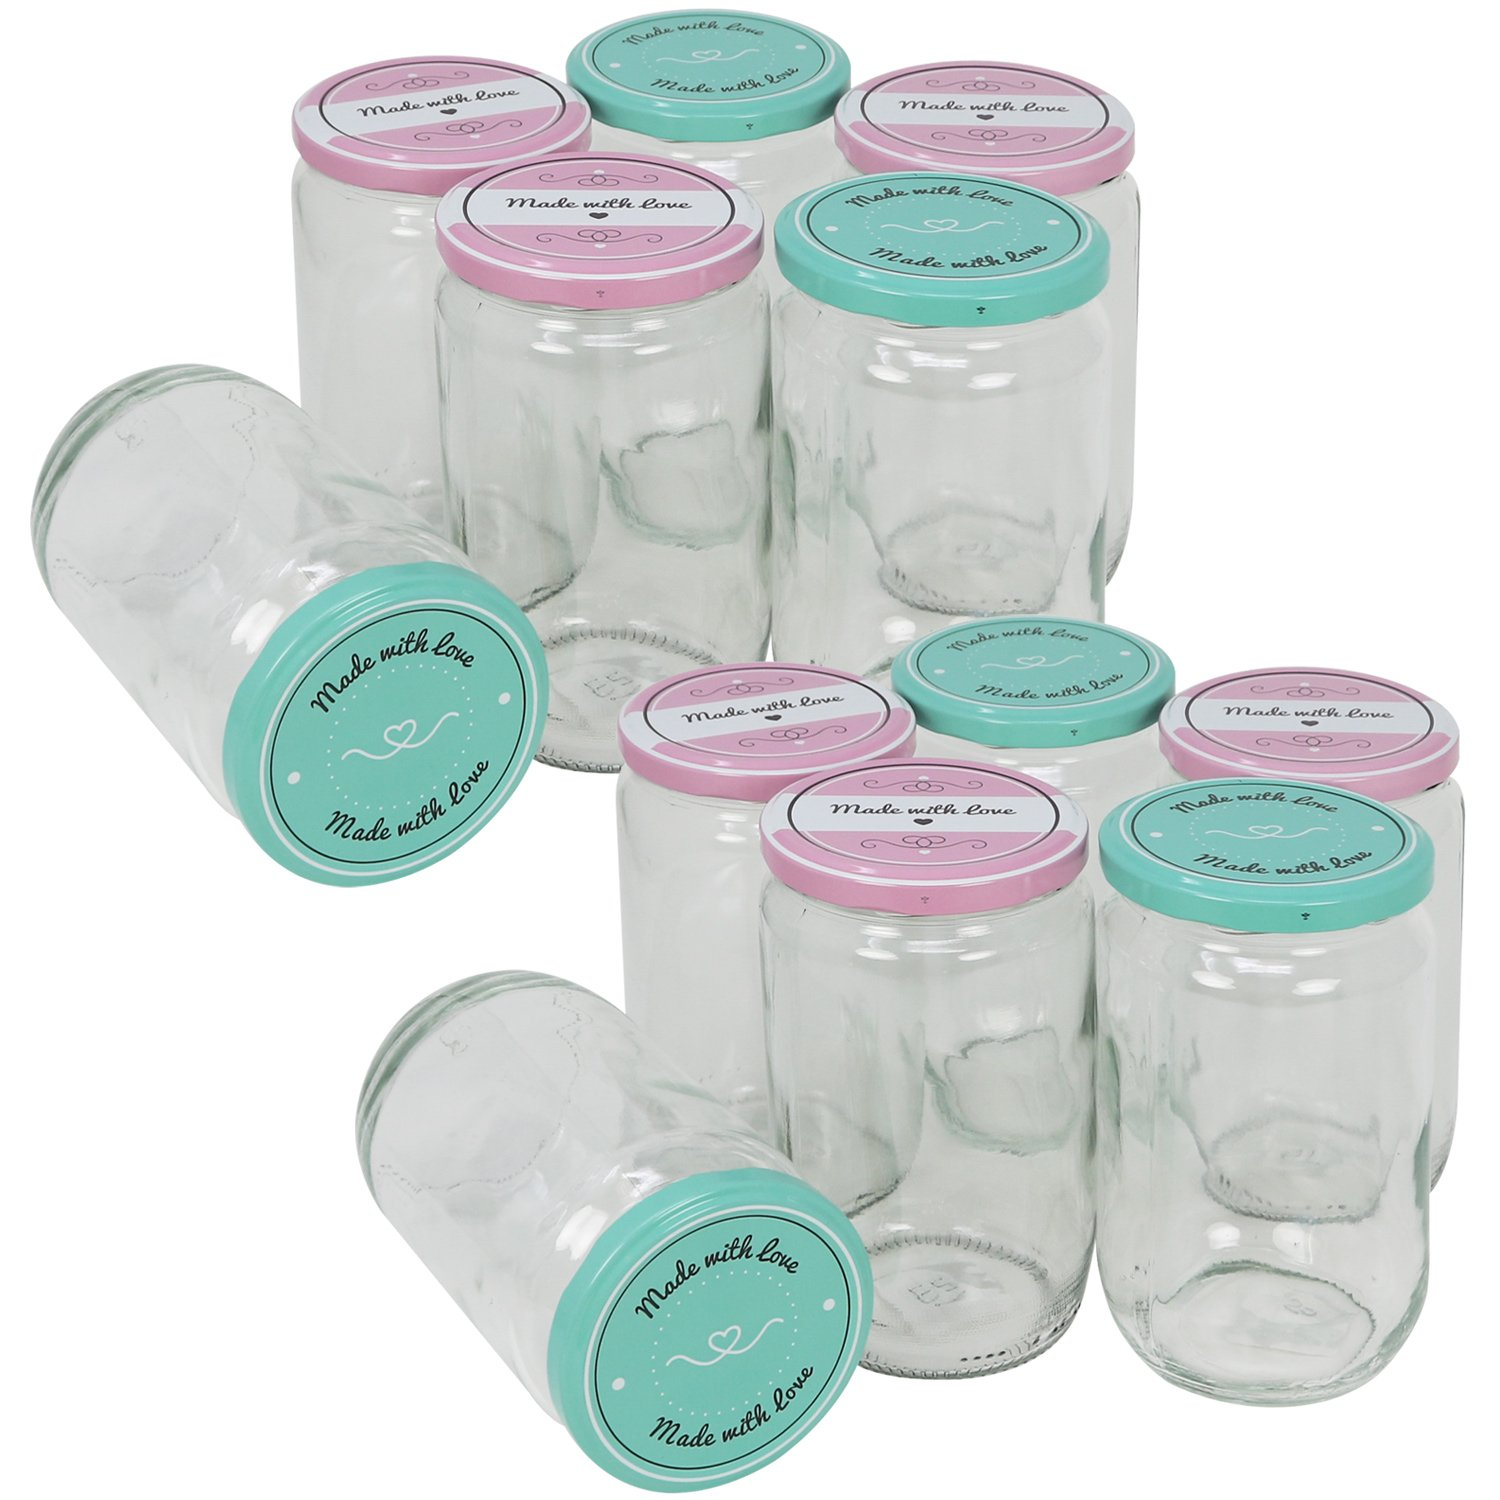 COM-FOUR 6X Bulbous Preserving Jars with Screw topMade with Love in Green and Pink, to Ø 82 mm, 260 ml (06 Pieces - 260 ml Bulbous)